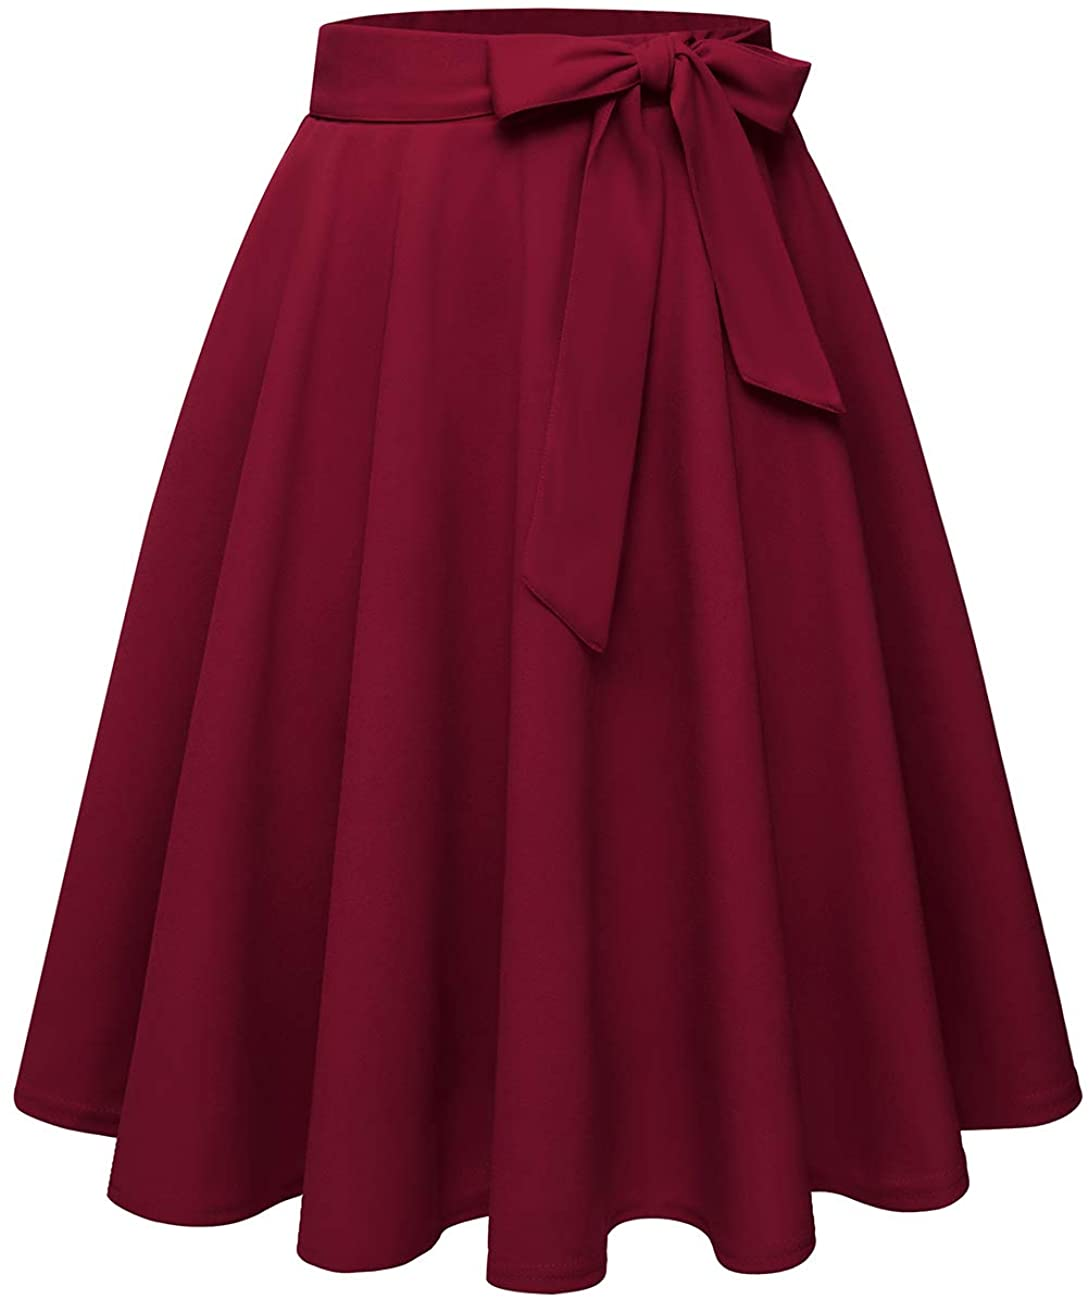 A-line High Waist Knee Length Skirt with Two Pockets